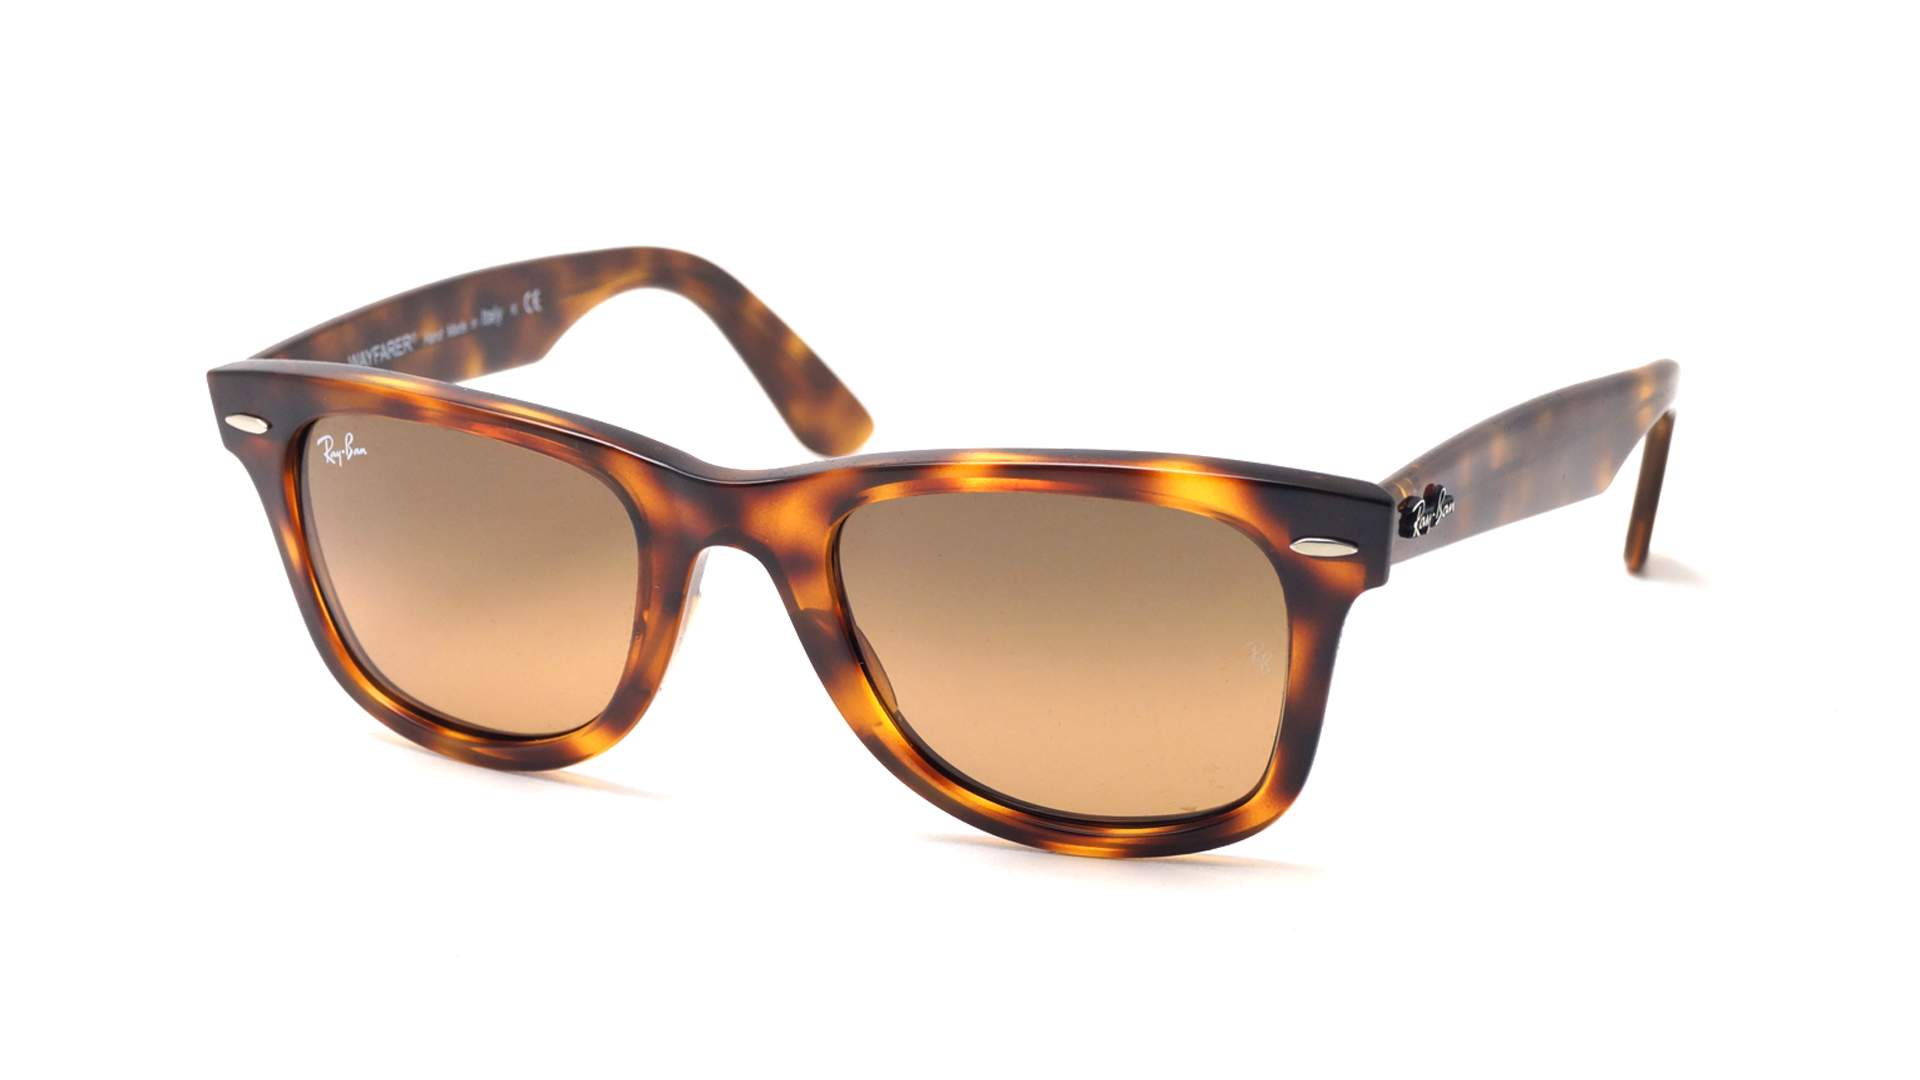 f65d66b492 Sunglasses Ray-Ban Wayfarer Ease Tortoise RB4340 6397 43 50-22 Medium  Gradient